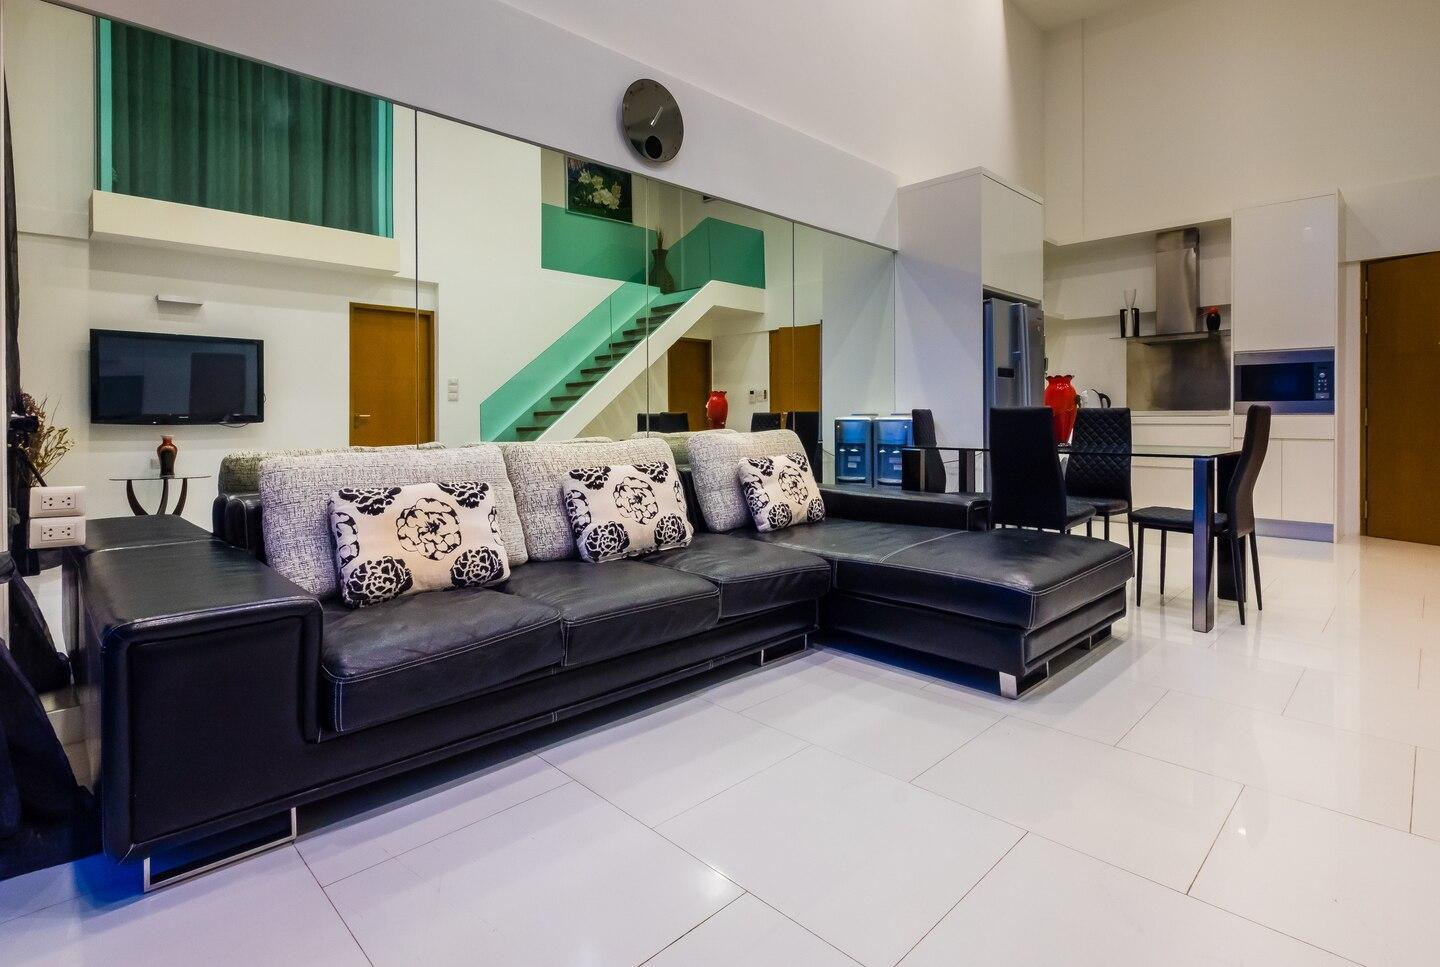 Luxury Two Bedroom Apartment With 2 Bedrooms